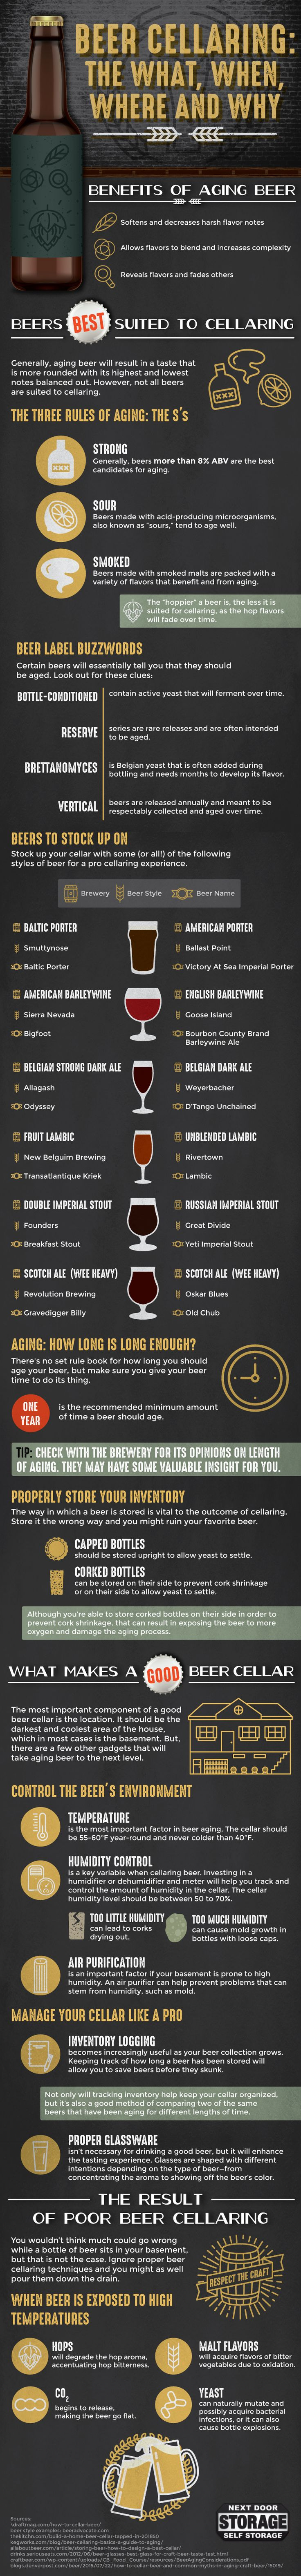 Beer Cellaring 101: The Benefits of Aging Beer One of the benefits of clearing out your basement and putting things into a storage space is that you can dedicate this new found space to productive activities or hobbies. For example: beer cellaring. Cellar Conditions If you're aging your beer in an at-home cellar, it should …